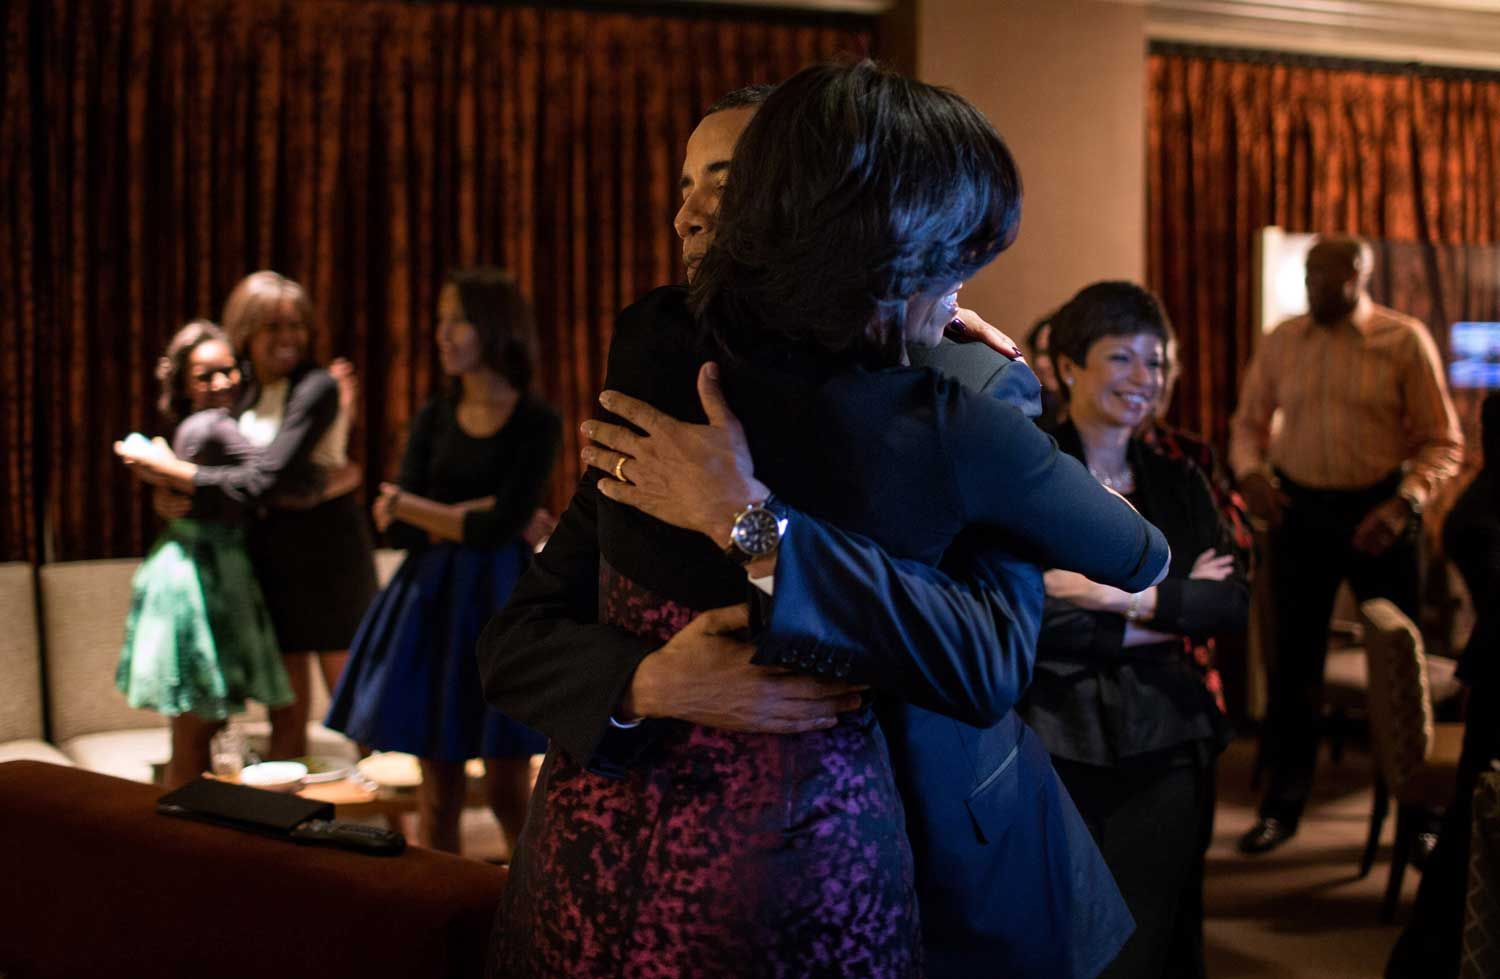 President Barack Obama and First Lady Michelle Obama embrace after watching CNN project the outcome of the election, at the Fairmont Chicago Millennium Park in Chicago, Ill., Nov. 6, 2012.